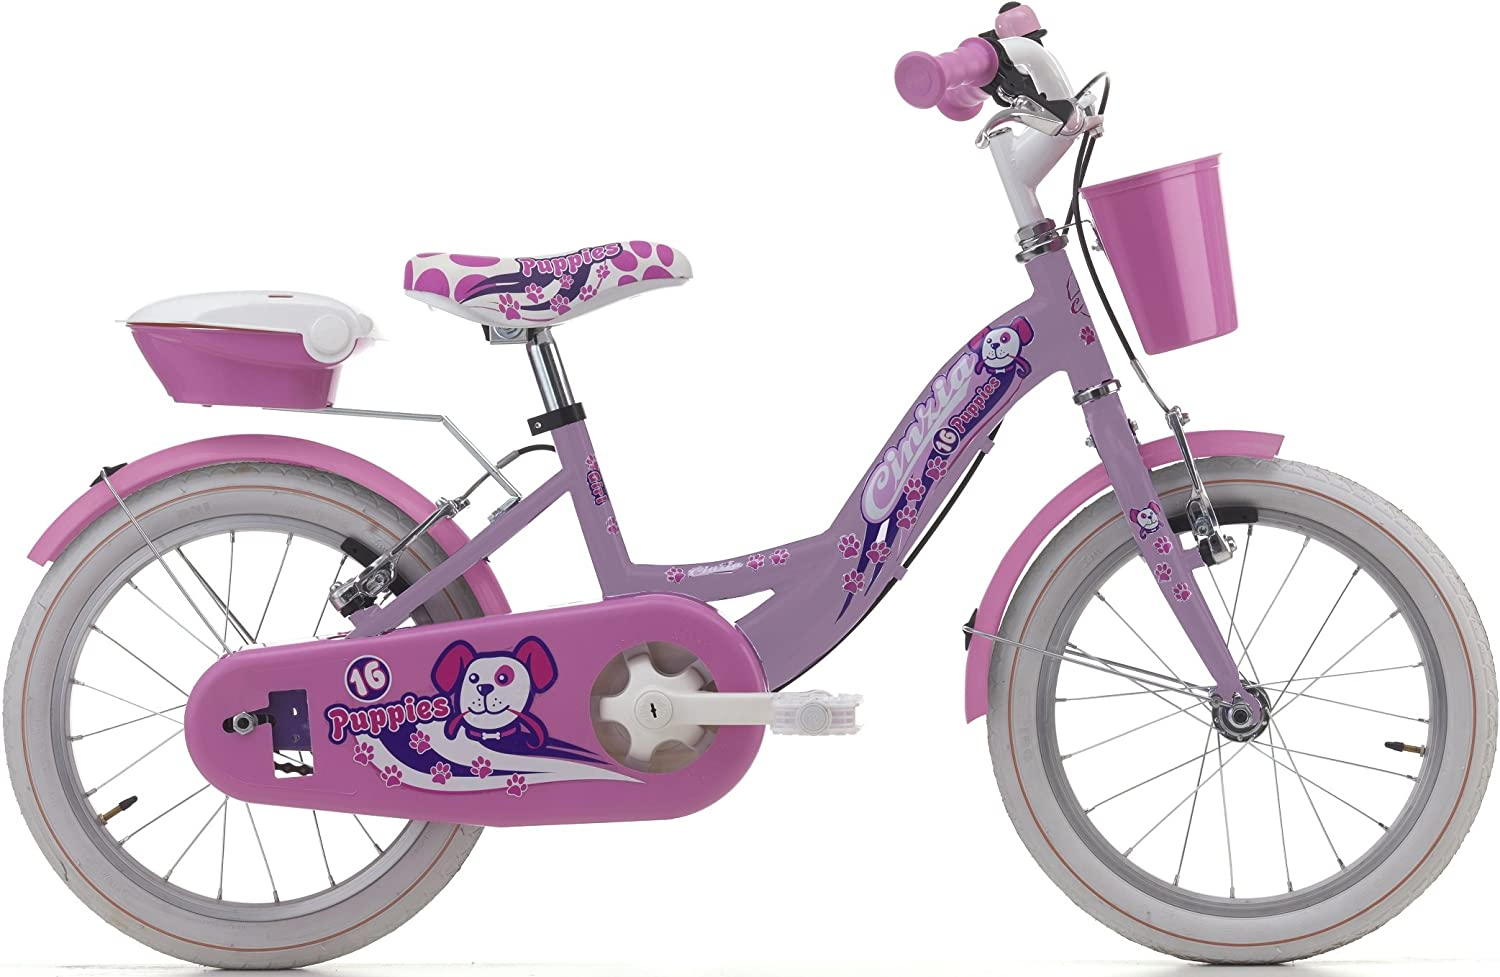 Bicycle Cycles Cinzia Puppies Girl's, steel frame, two sizes available